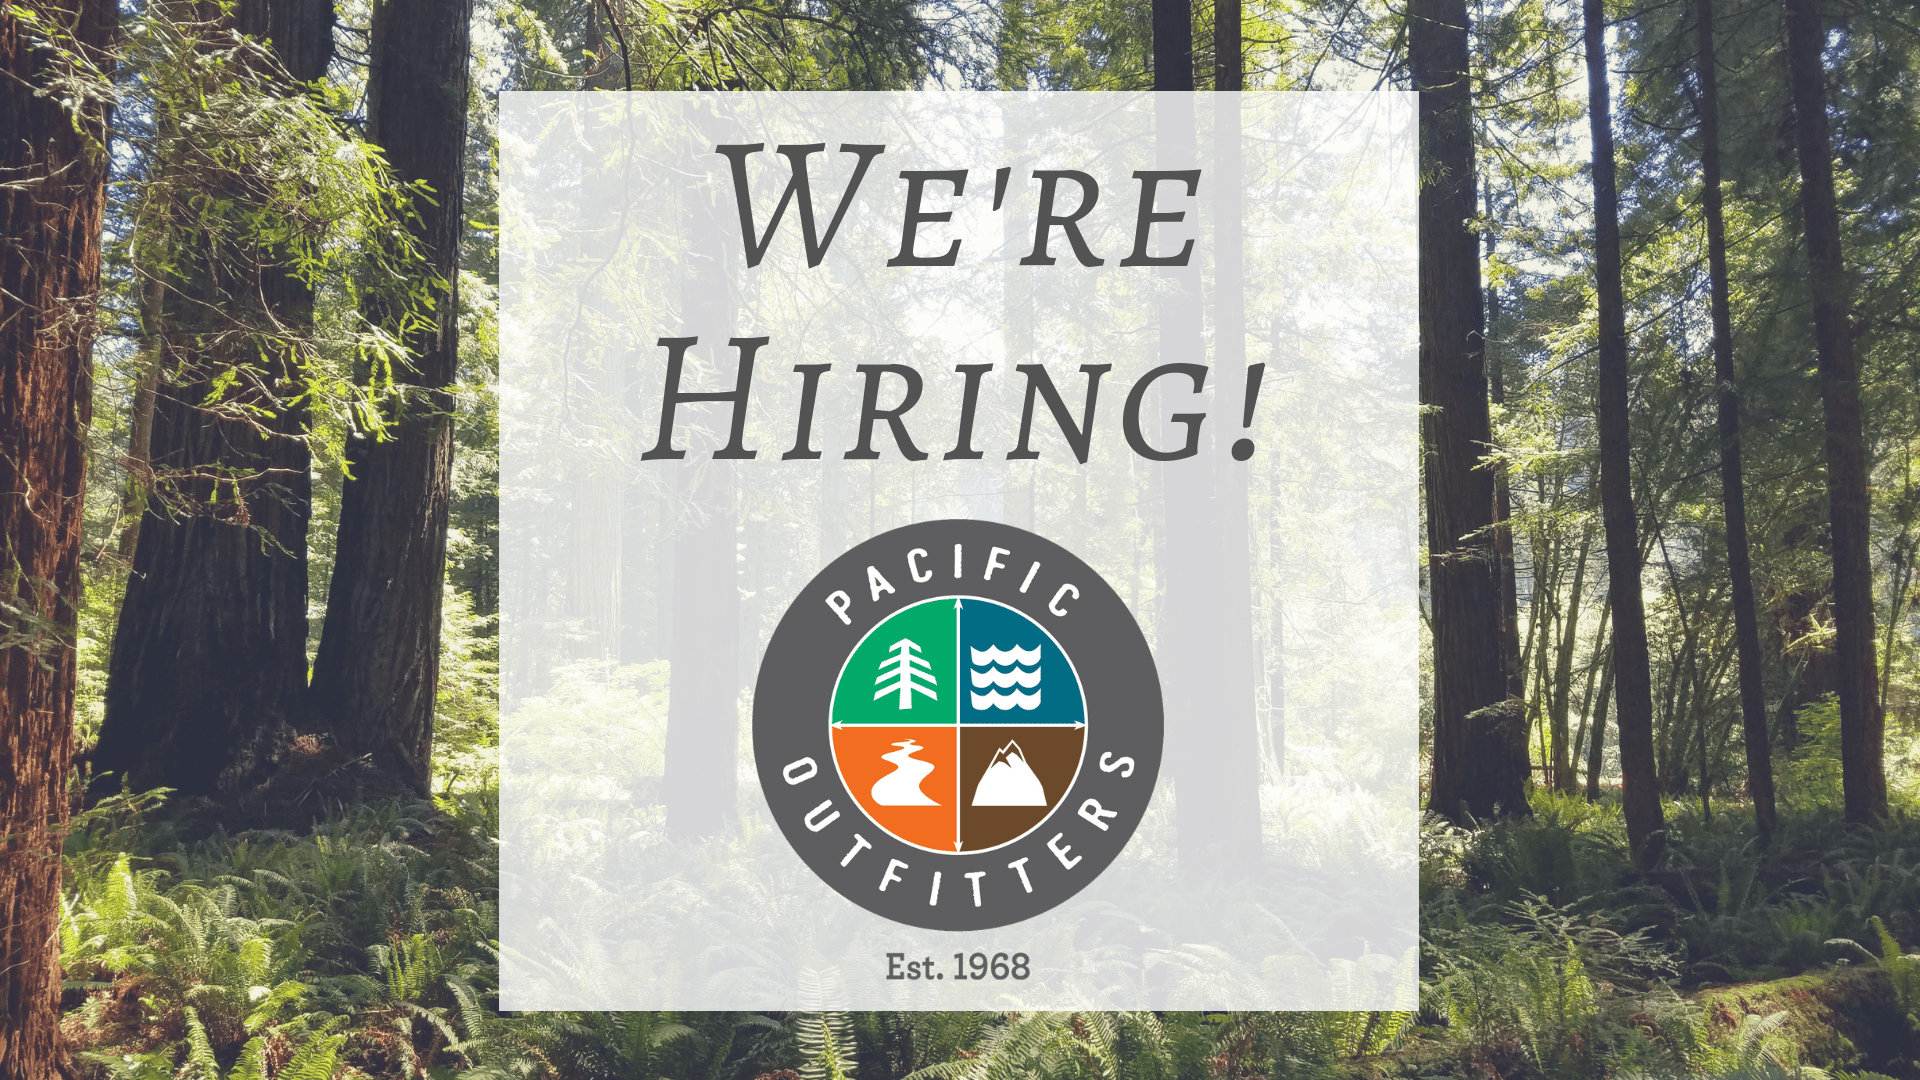 Pacific Outfitters Hiring - Employment